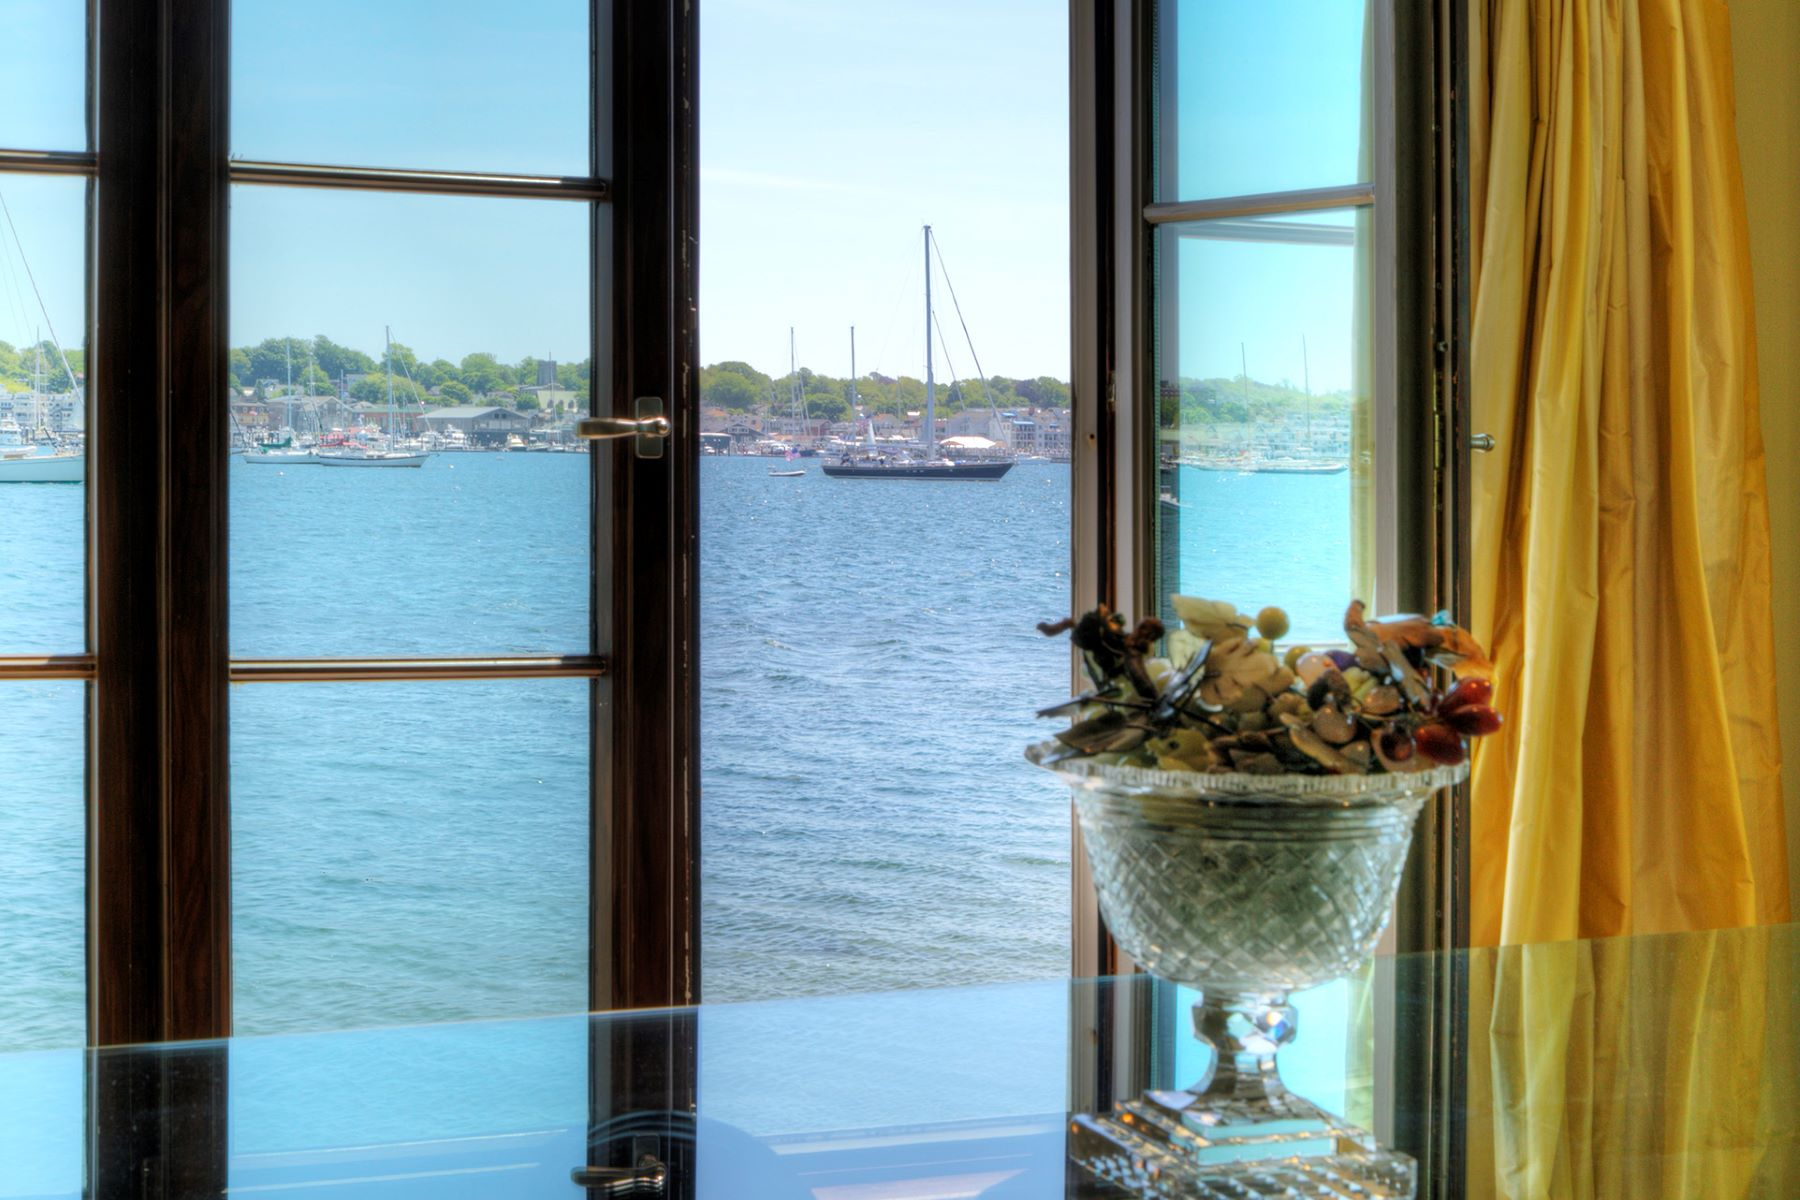 Condominium for Sale at Defenders Row on Goat Island 19 Defenders Row Goat Island Newport, Rhode Island 02940 United States